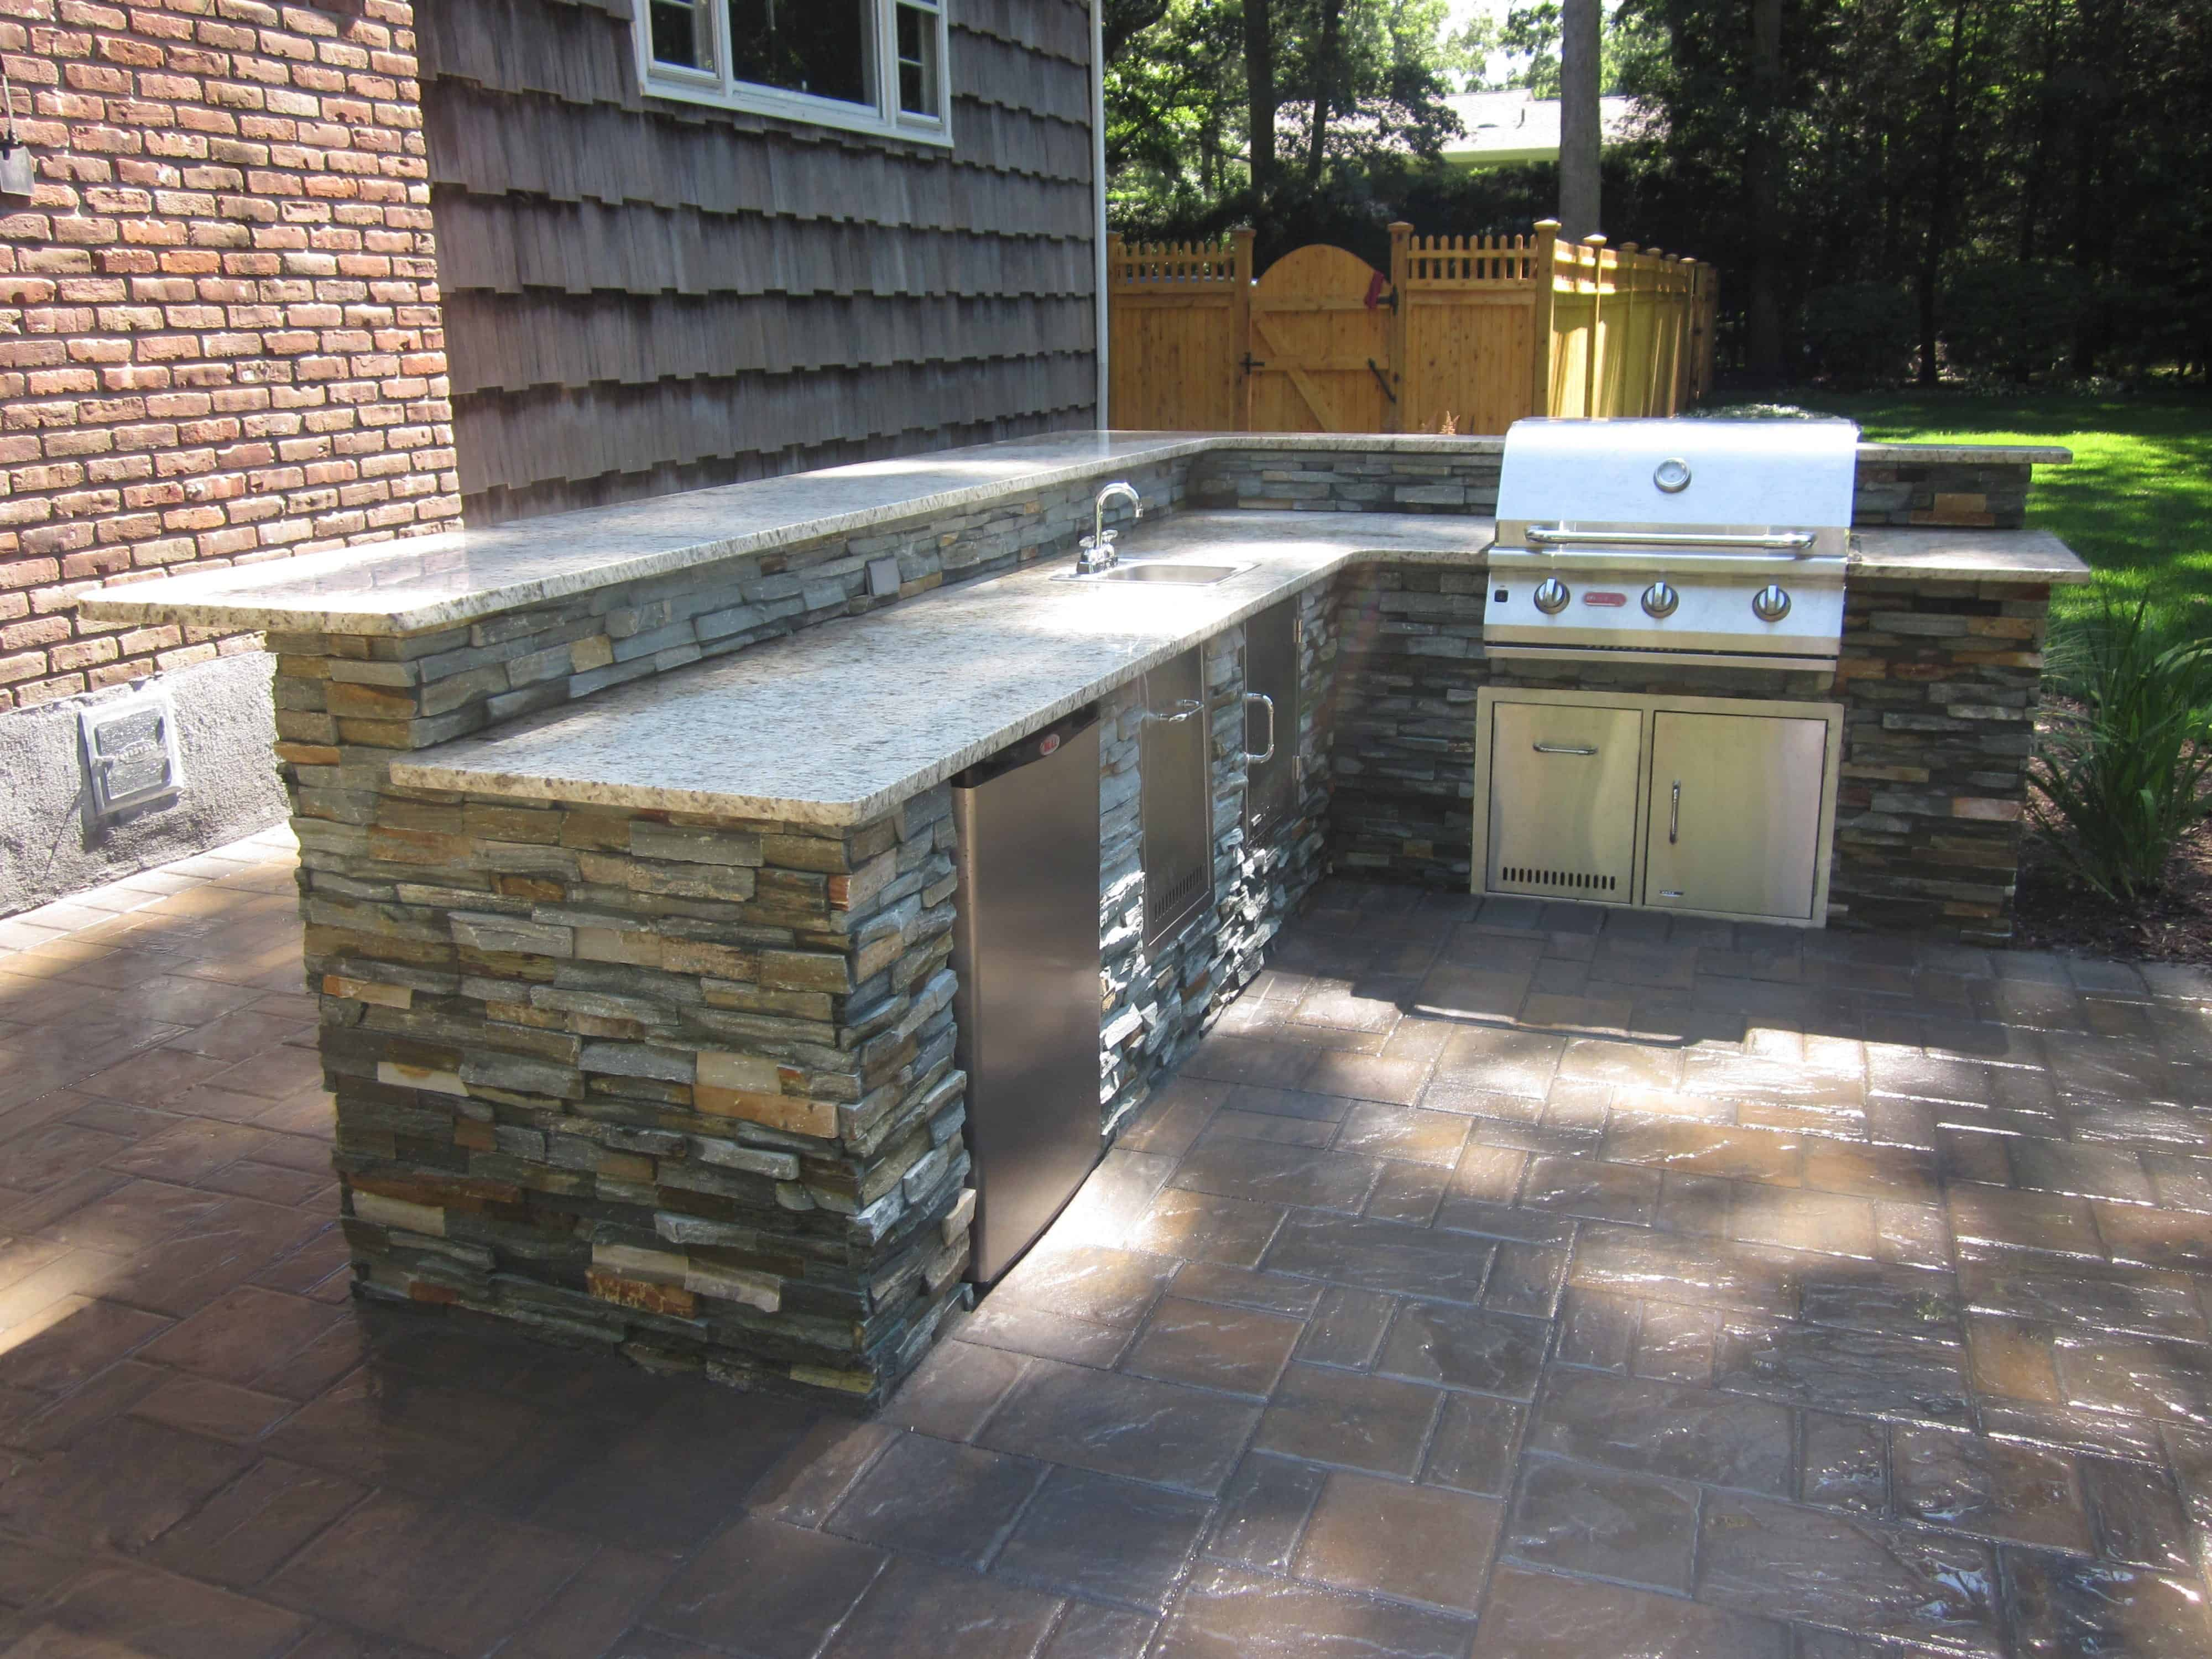 Outdoor Kitchen with Raised Bar veneered with East West Stone - Bayside Waters - Equipped with Brahma Grill, Access Doors, Sink w/ Access Door, Trash Drawer, and Refrigerator-Electrical outlets in backsplash - Dix Hills, Long Island NY